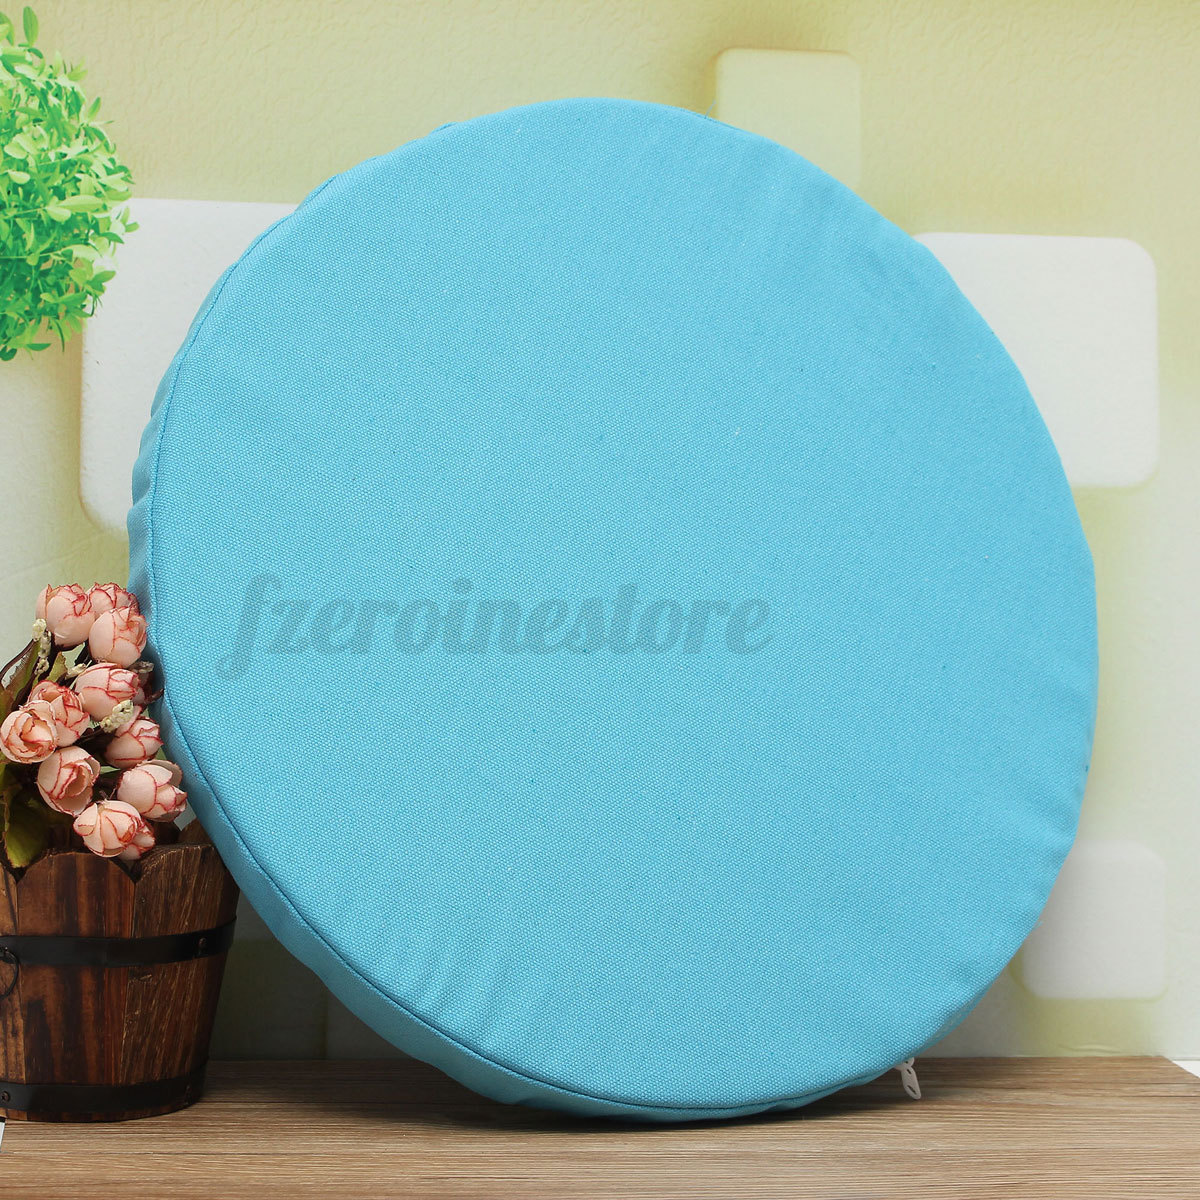 Round Soft Offic Sofa Chair Seat Pad Cushion Kitchen  : A58299A79A8DF696E6BD568C47F62756D656CB6613C9C7939A53D2C82656C89CD2CBC9CE469AD29D9BC936D2995CCB03CC4673839E9EAB739D83A083 from www.ebay.co.uk size 1200 x 1200 jpeg 395kB